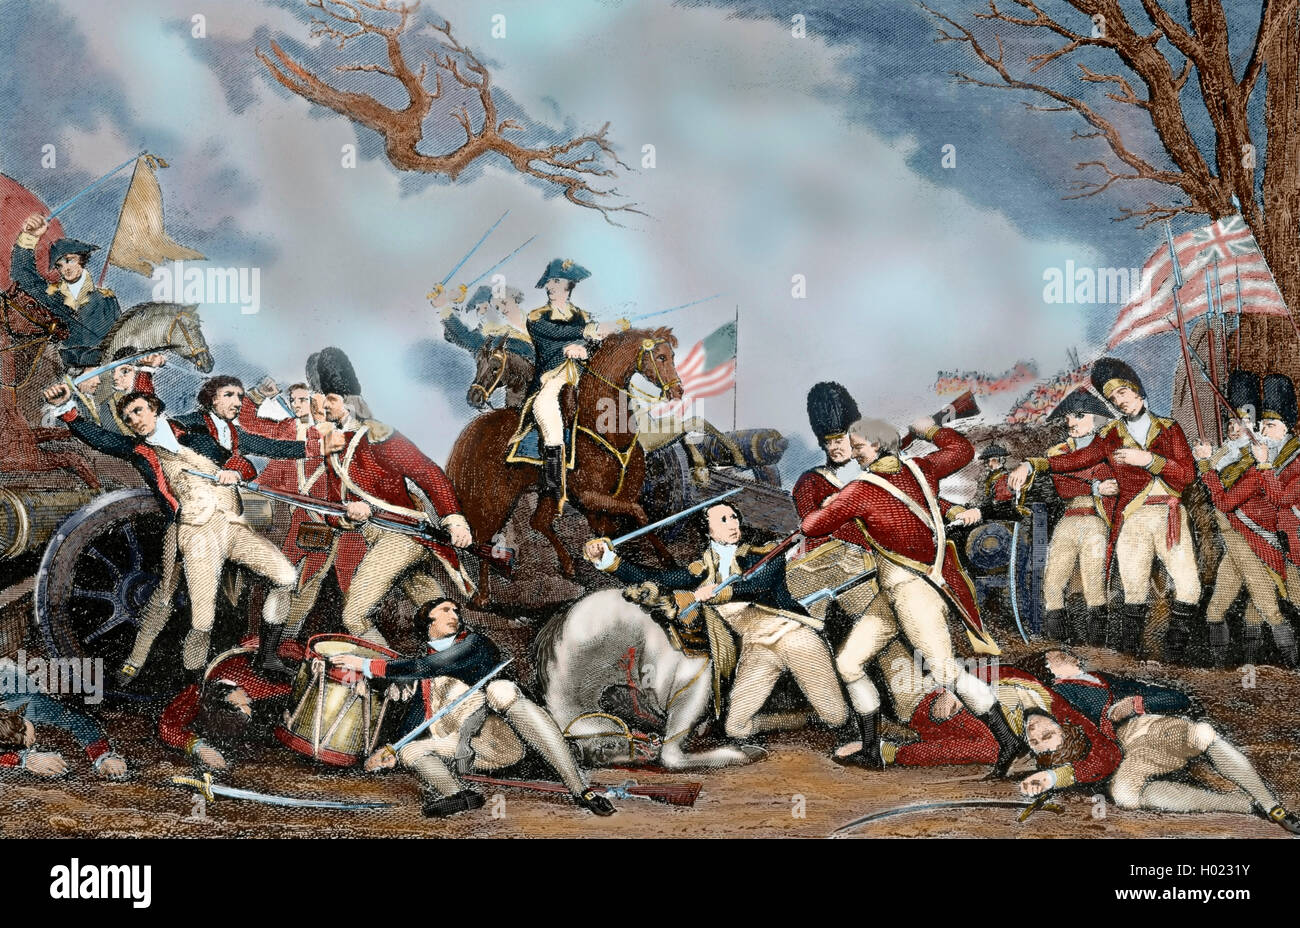 American Revolutionary War (1775-1783). The Battle of Princeton (January 3,  1777). The General George Washington's revolutionary forces defeated  British ...